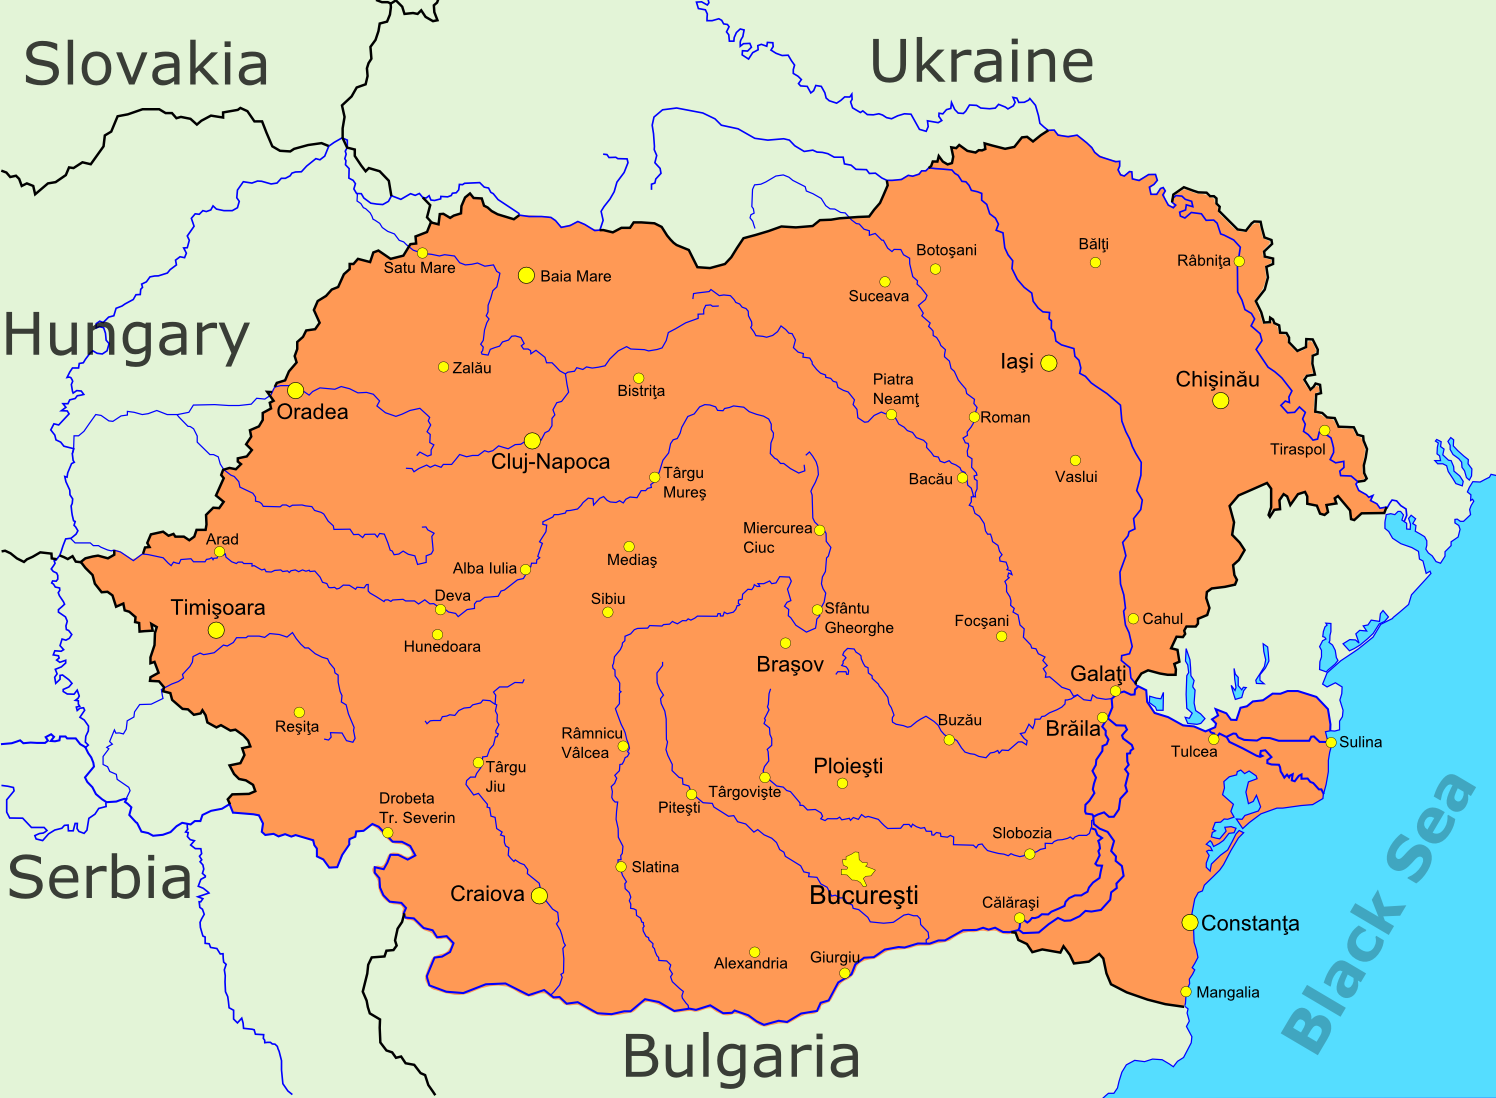 FilePotential union of Romania and Moldova including Transnistria